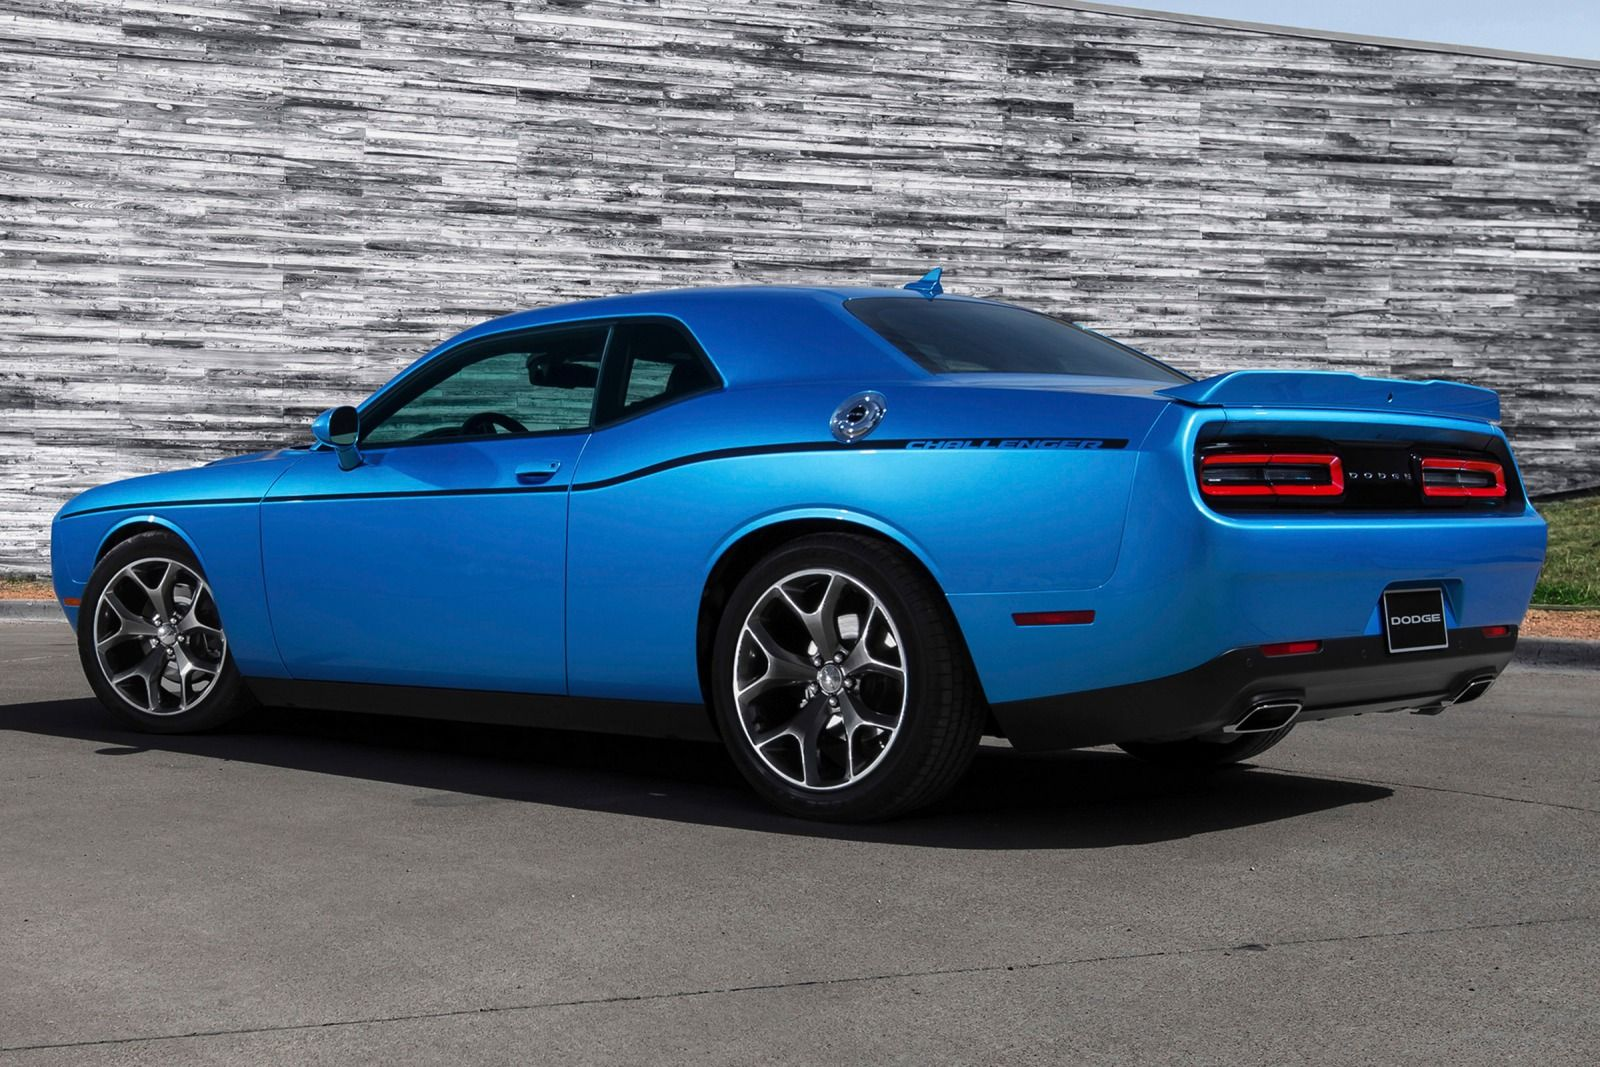 2015 Dodge Challenger SXT rear